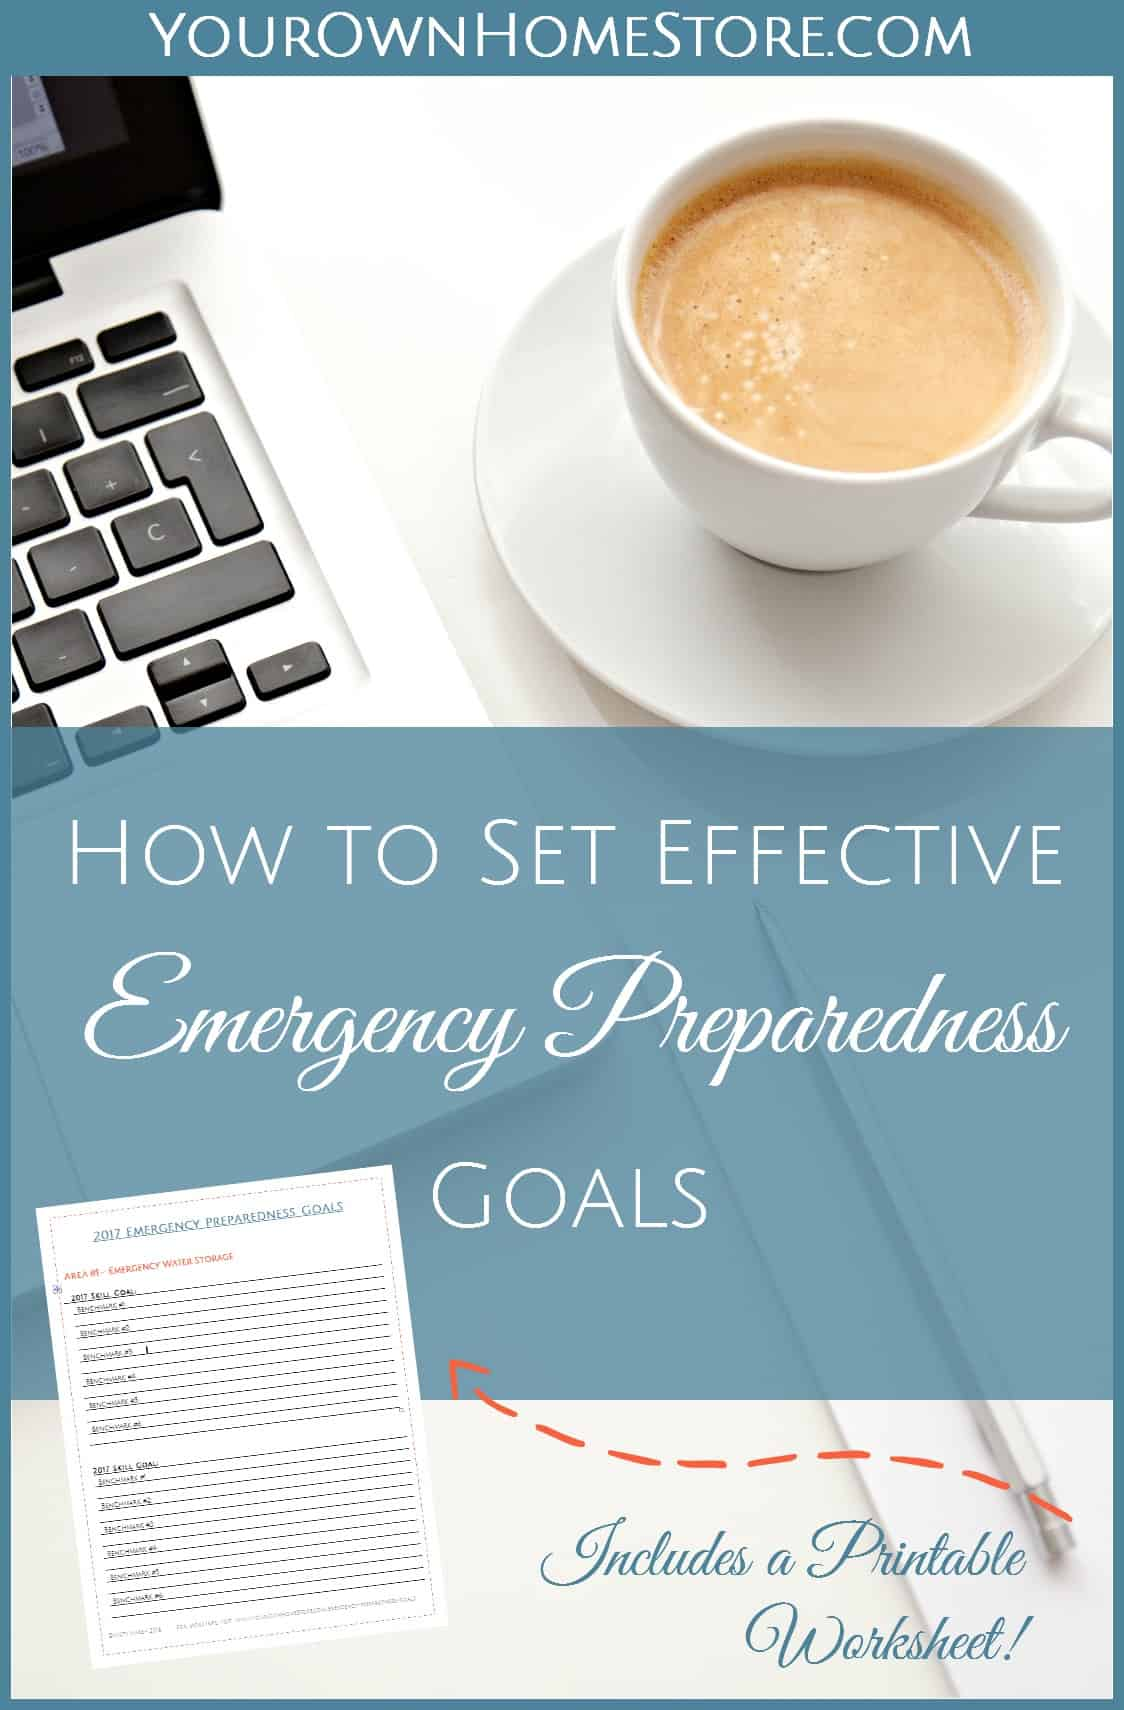 Set effective Emergency Preparedness Goals using this printable worksheet